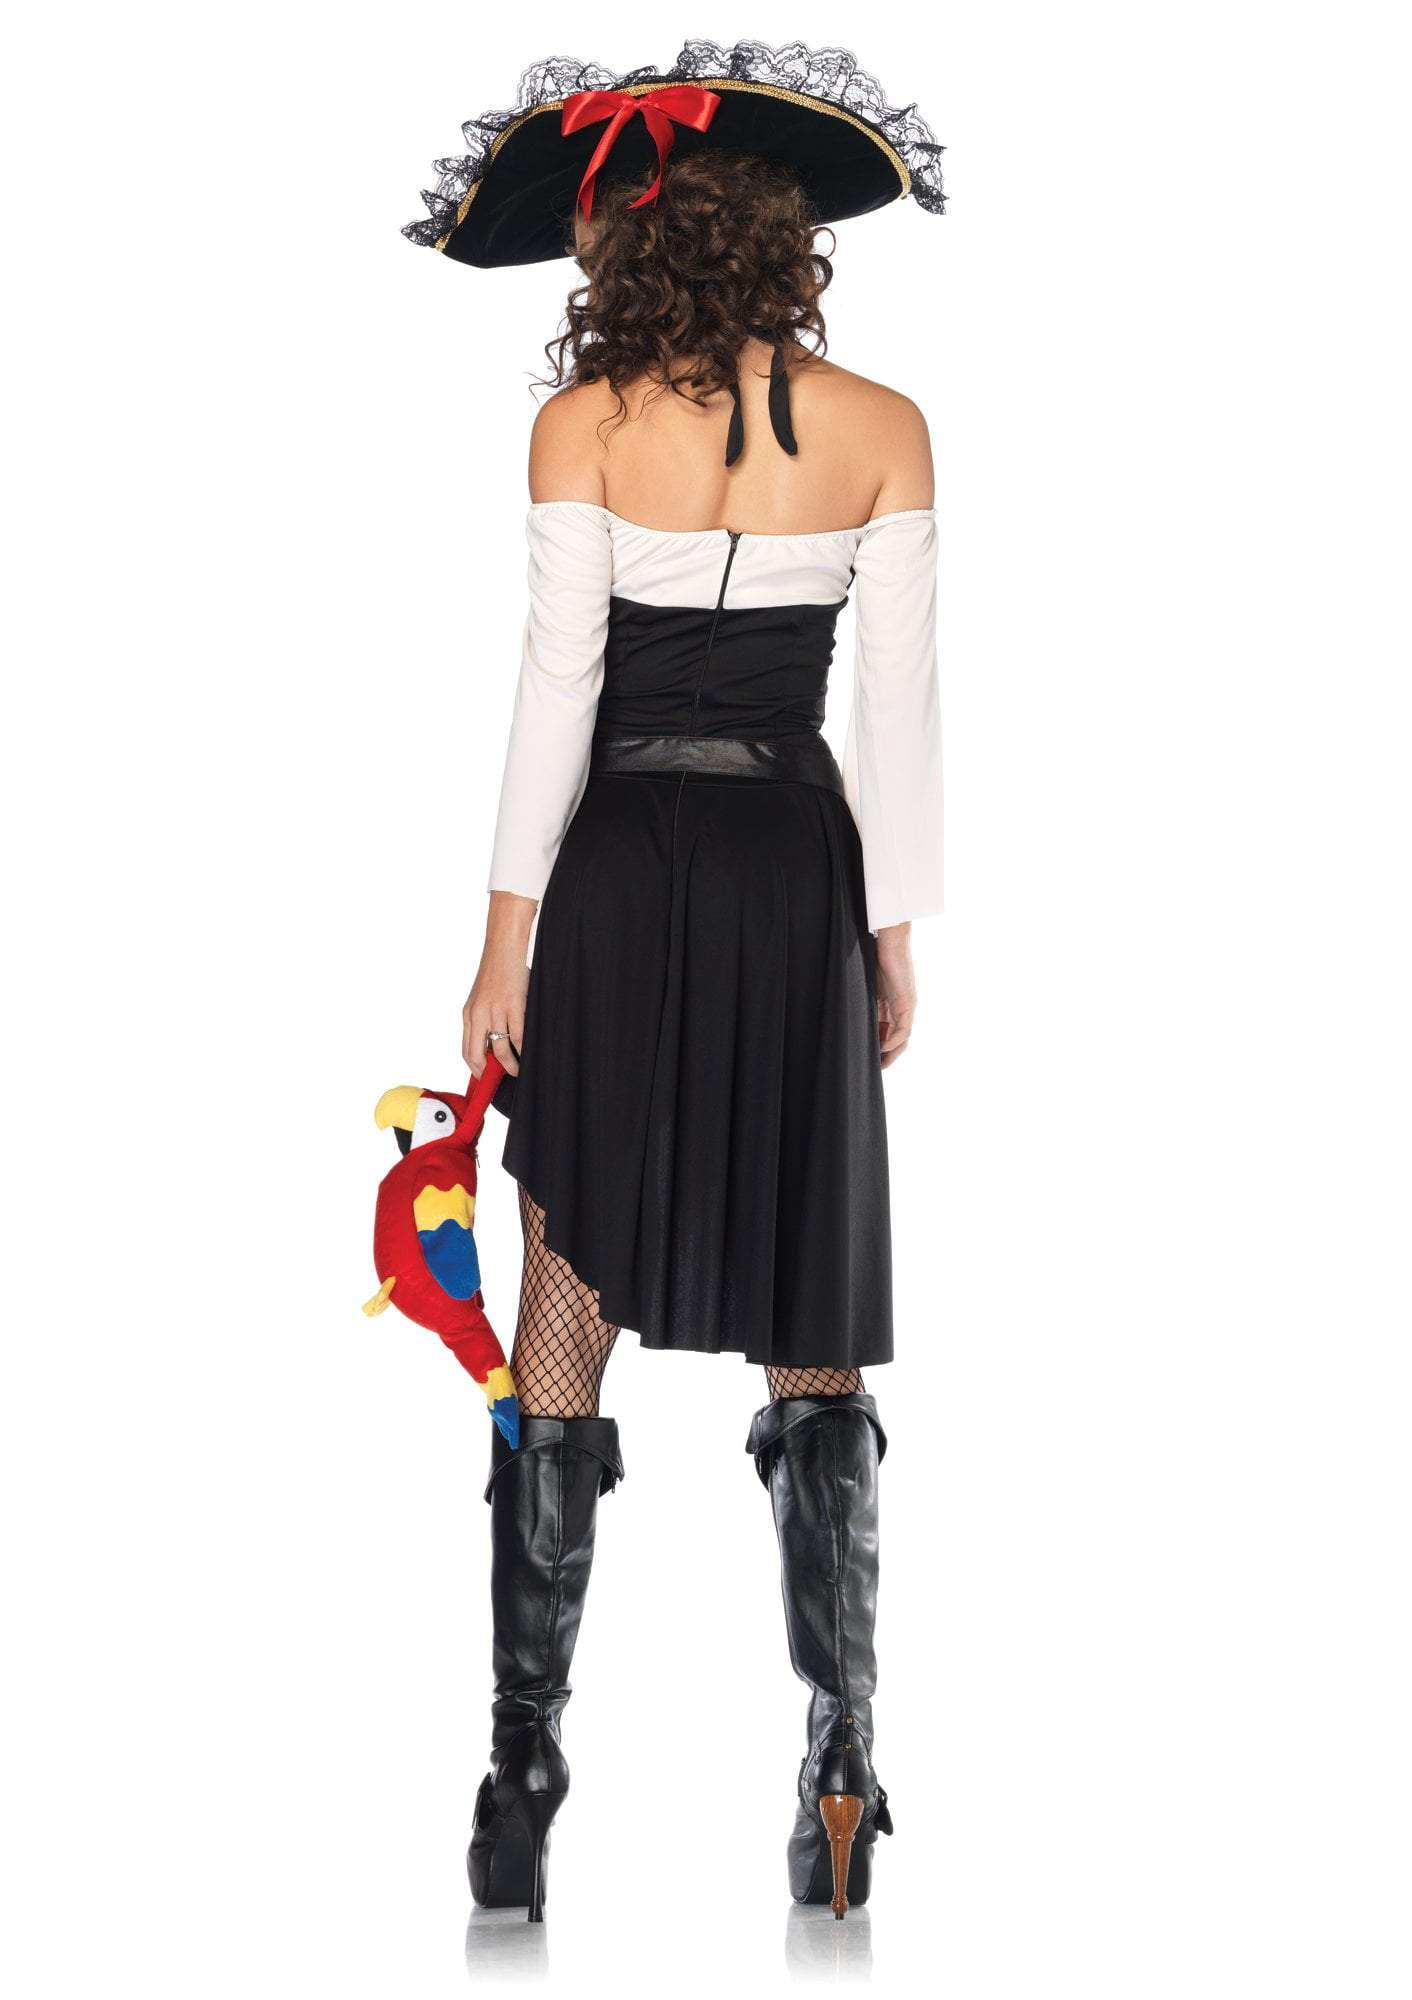 Leg Avenue Costumes Adult Saucy Wench Pirate Costume